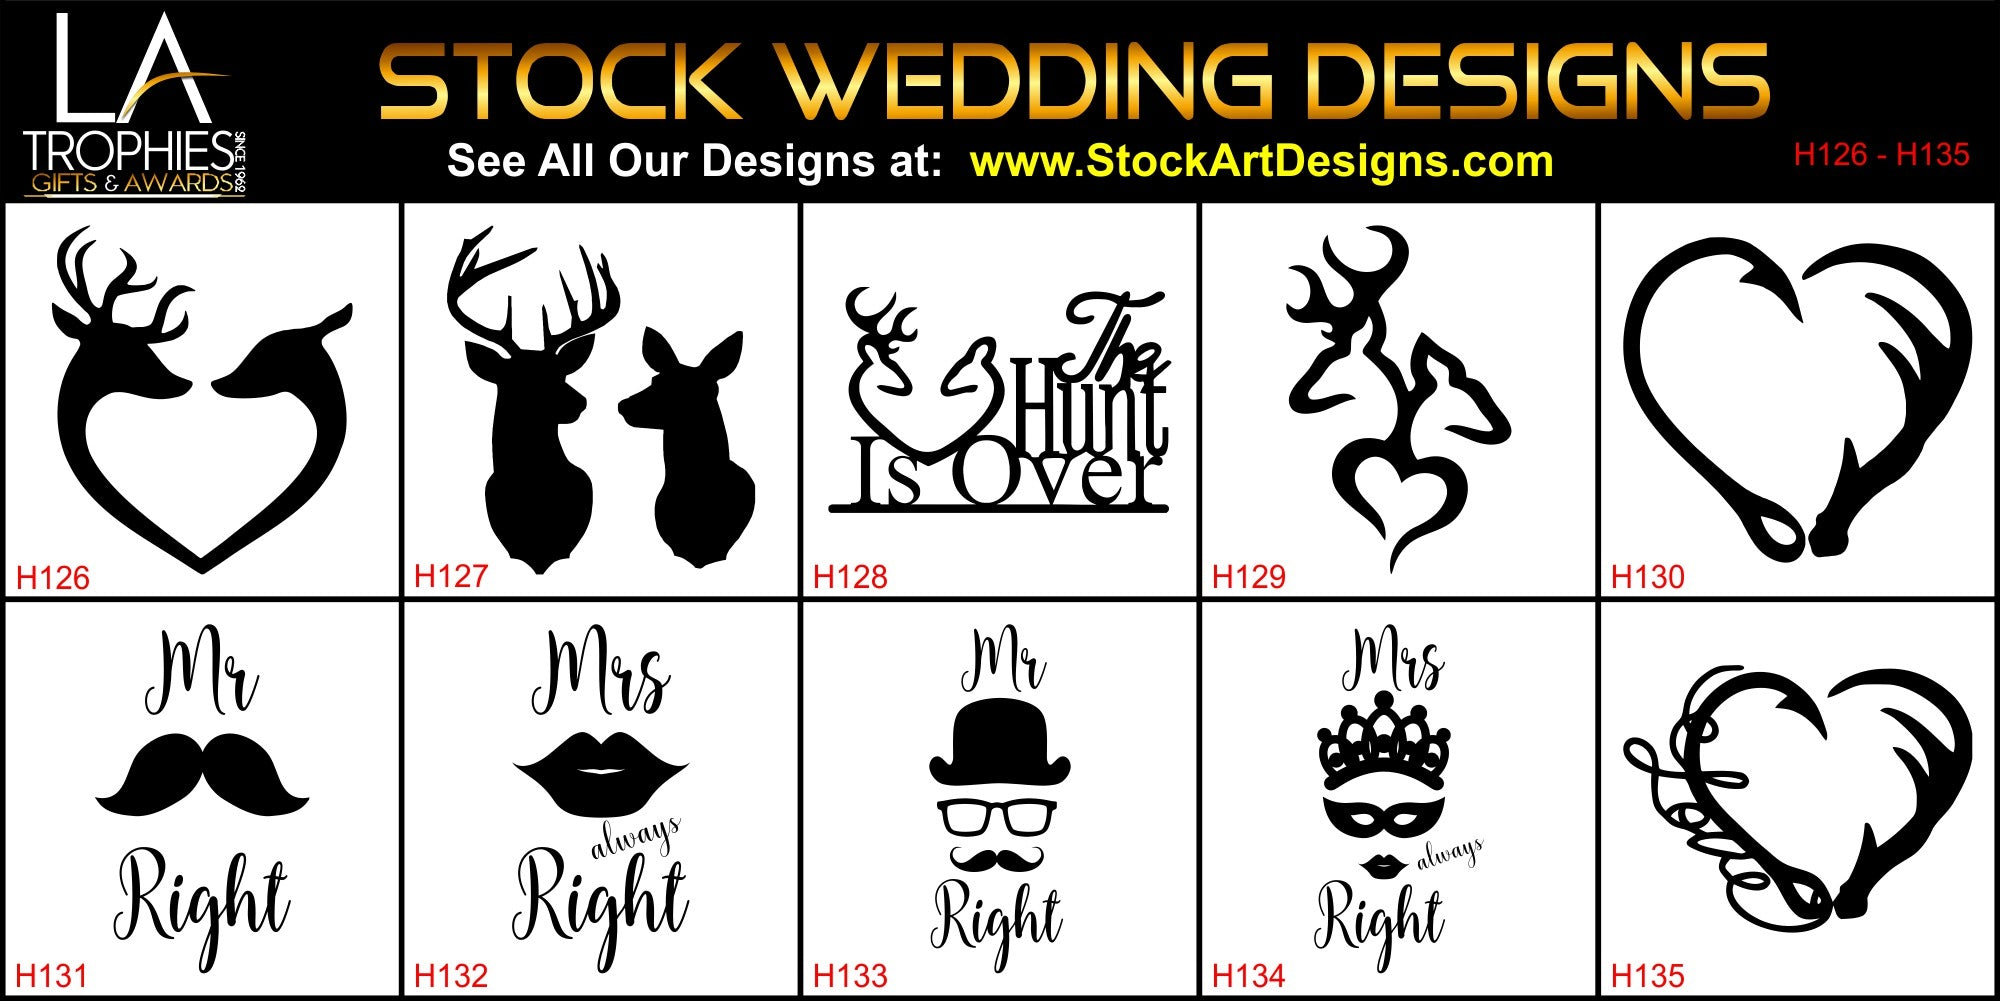 H126-H135 - Stock WEDDING PARTY Designs LA Trophies